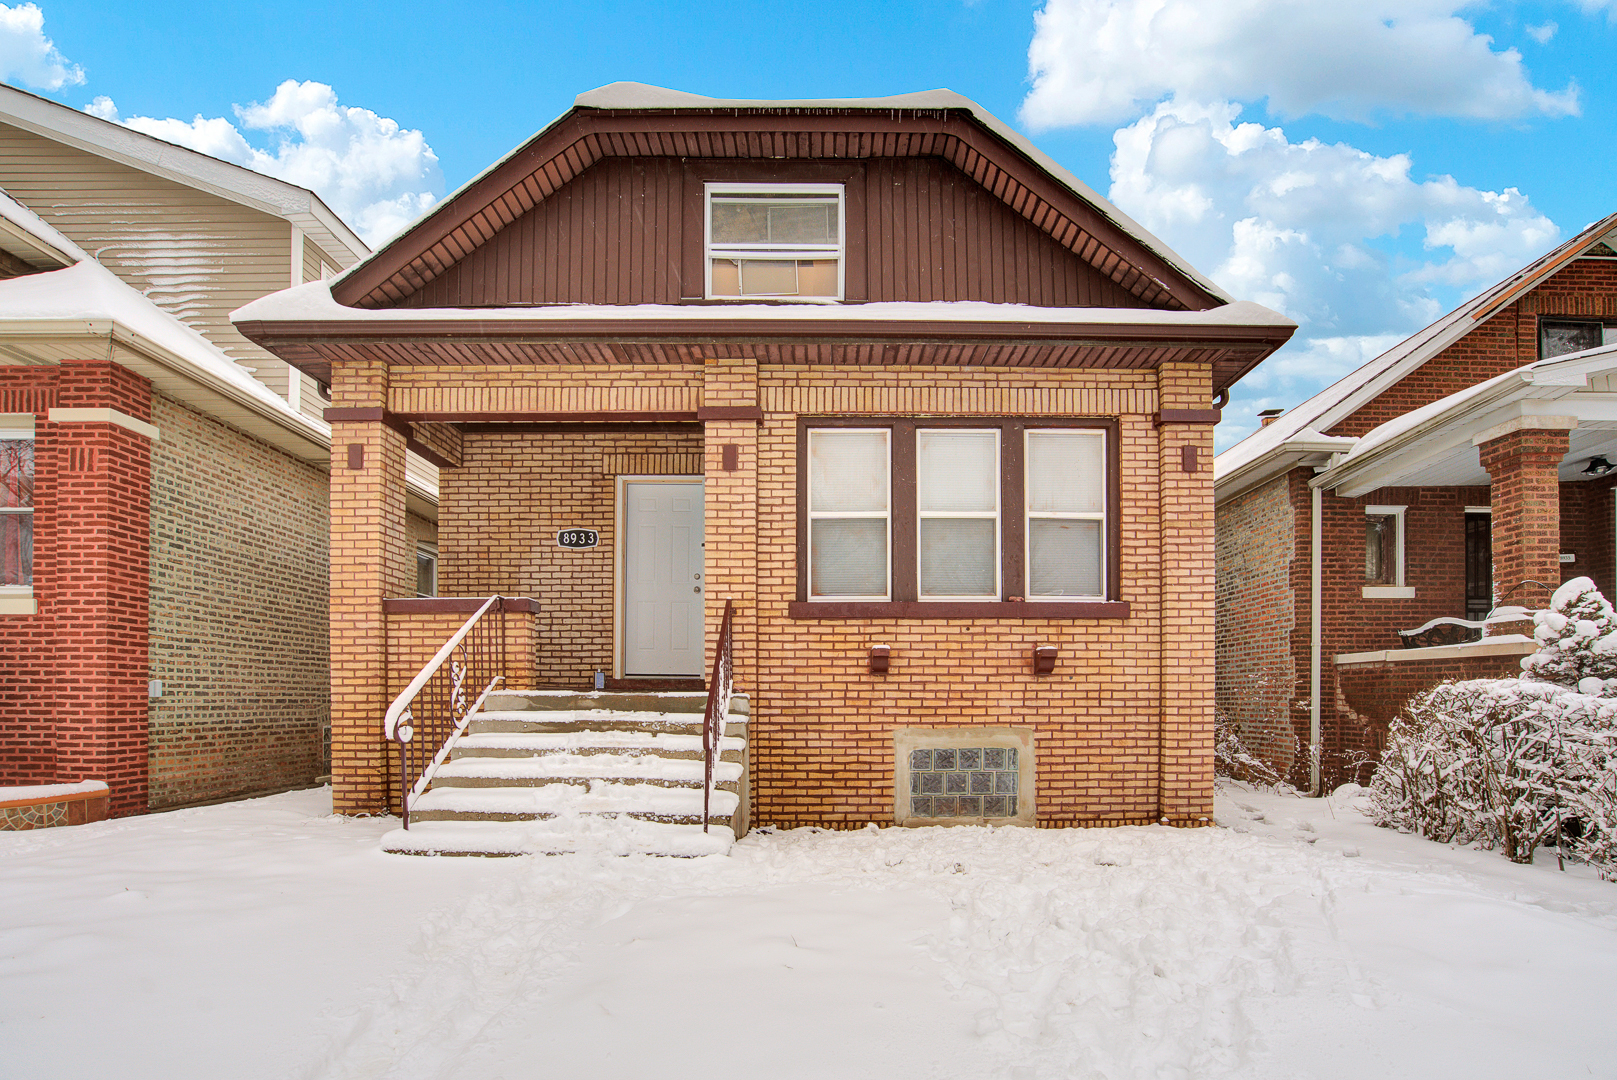 8933 S May Street, Chicago IL 60620